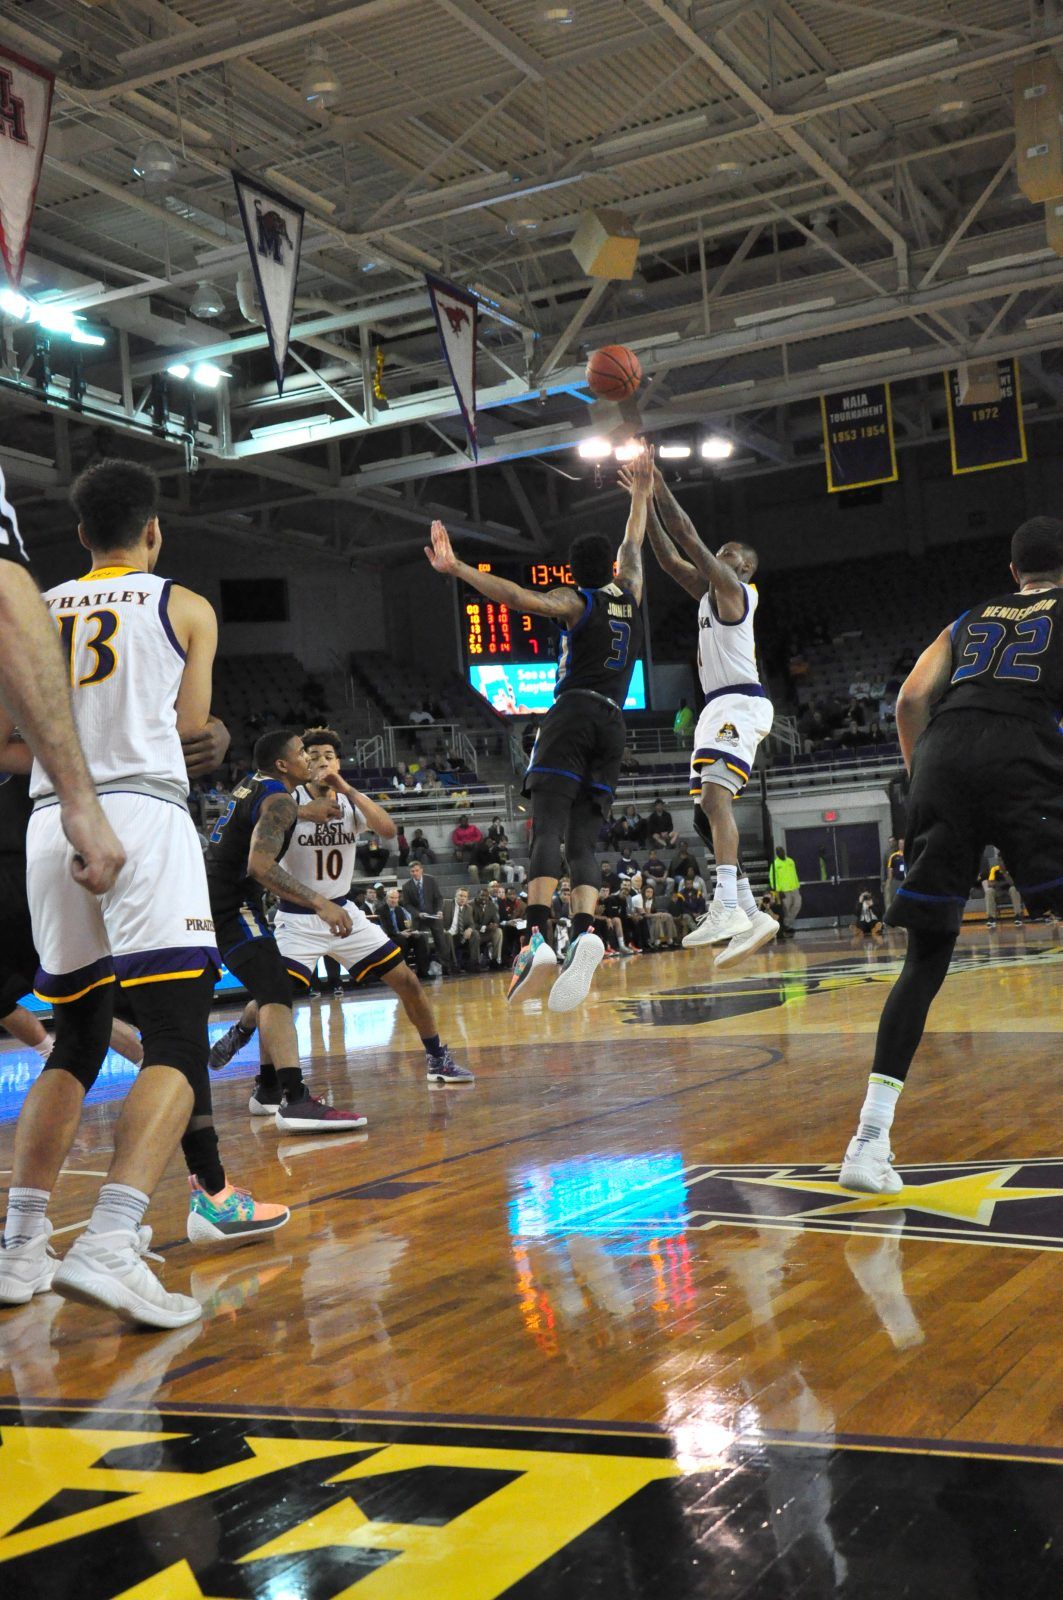 Senior B.J. Tyson, who led the Pirates with 18 points, takes a shot as Elijah Joiner (3) defends for Tulsa. (Photo by Al Myatt)